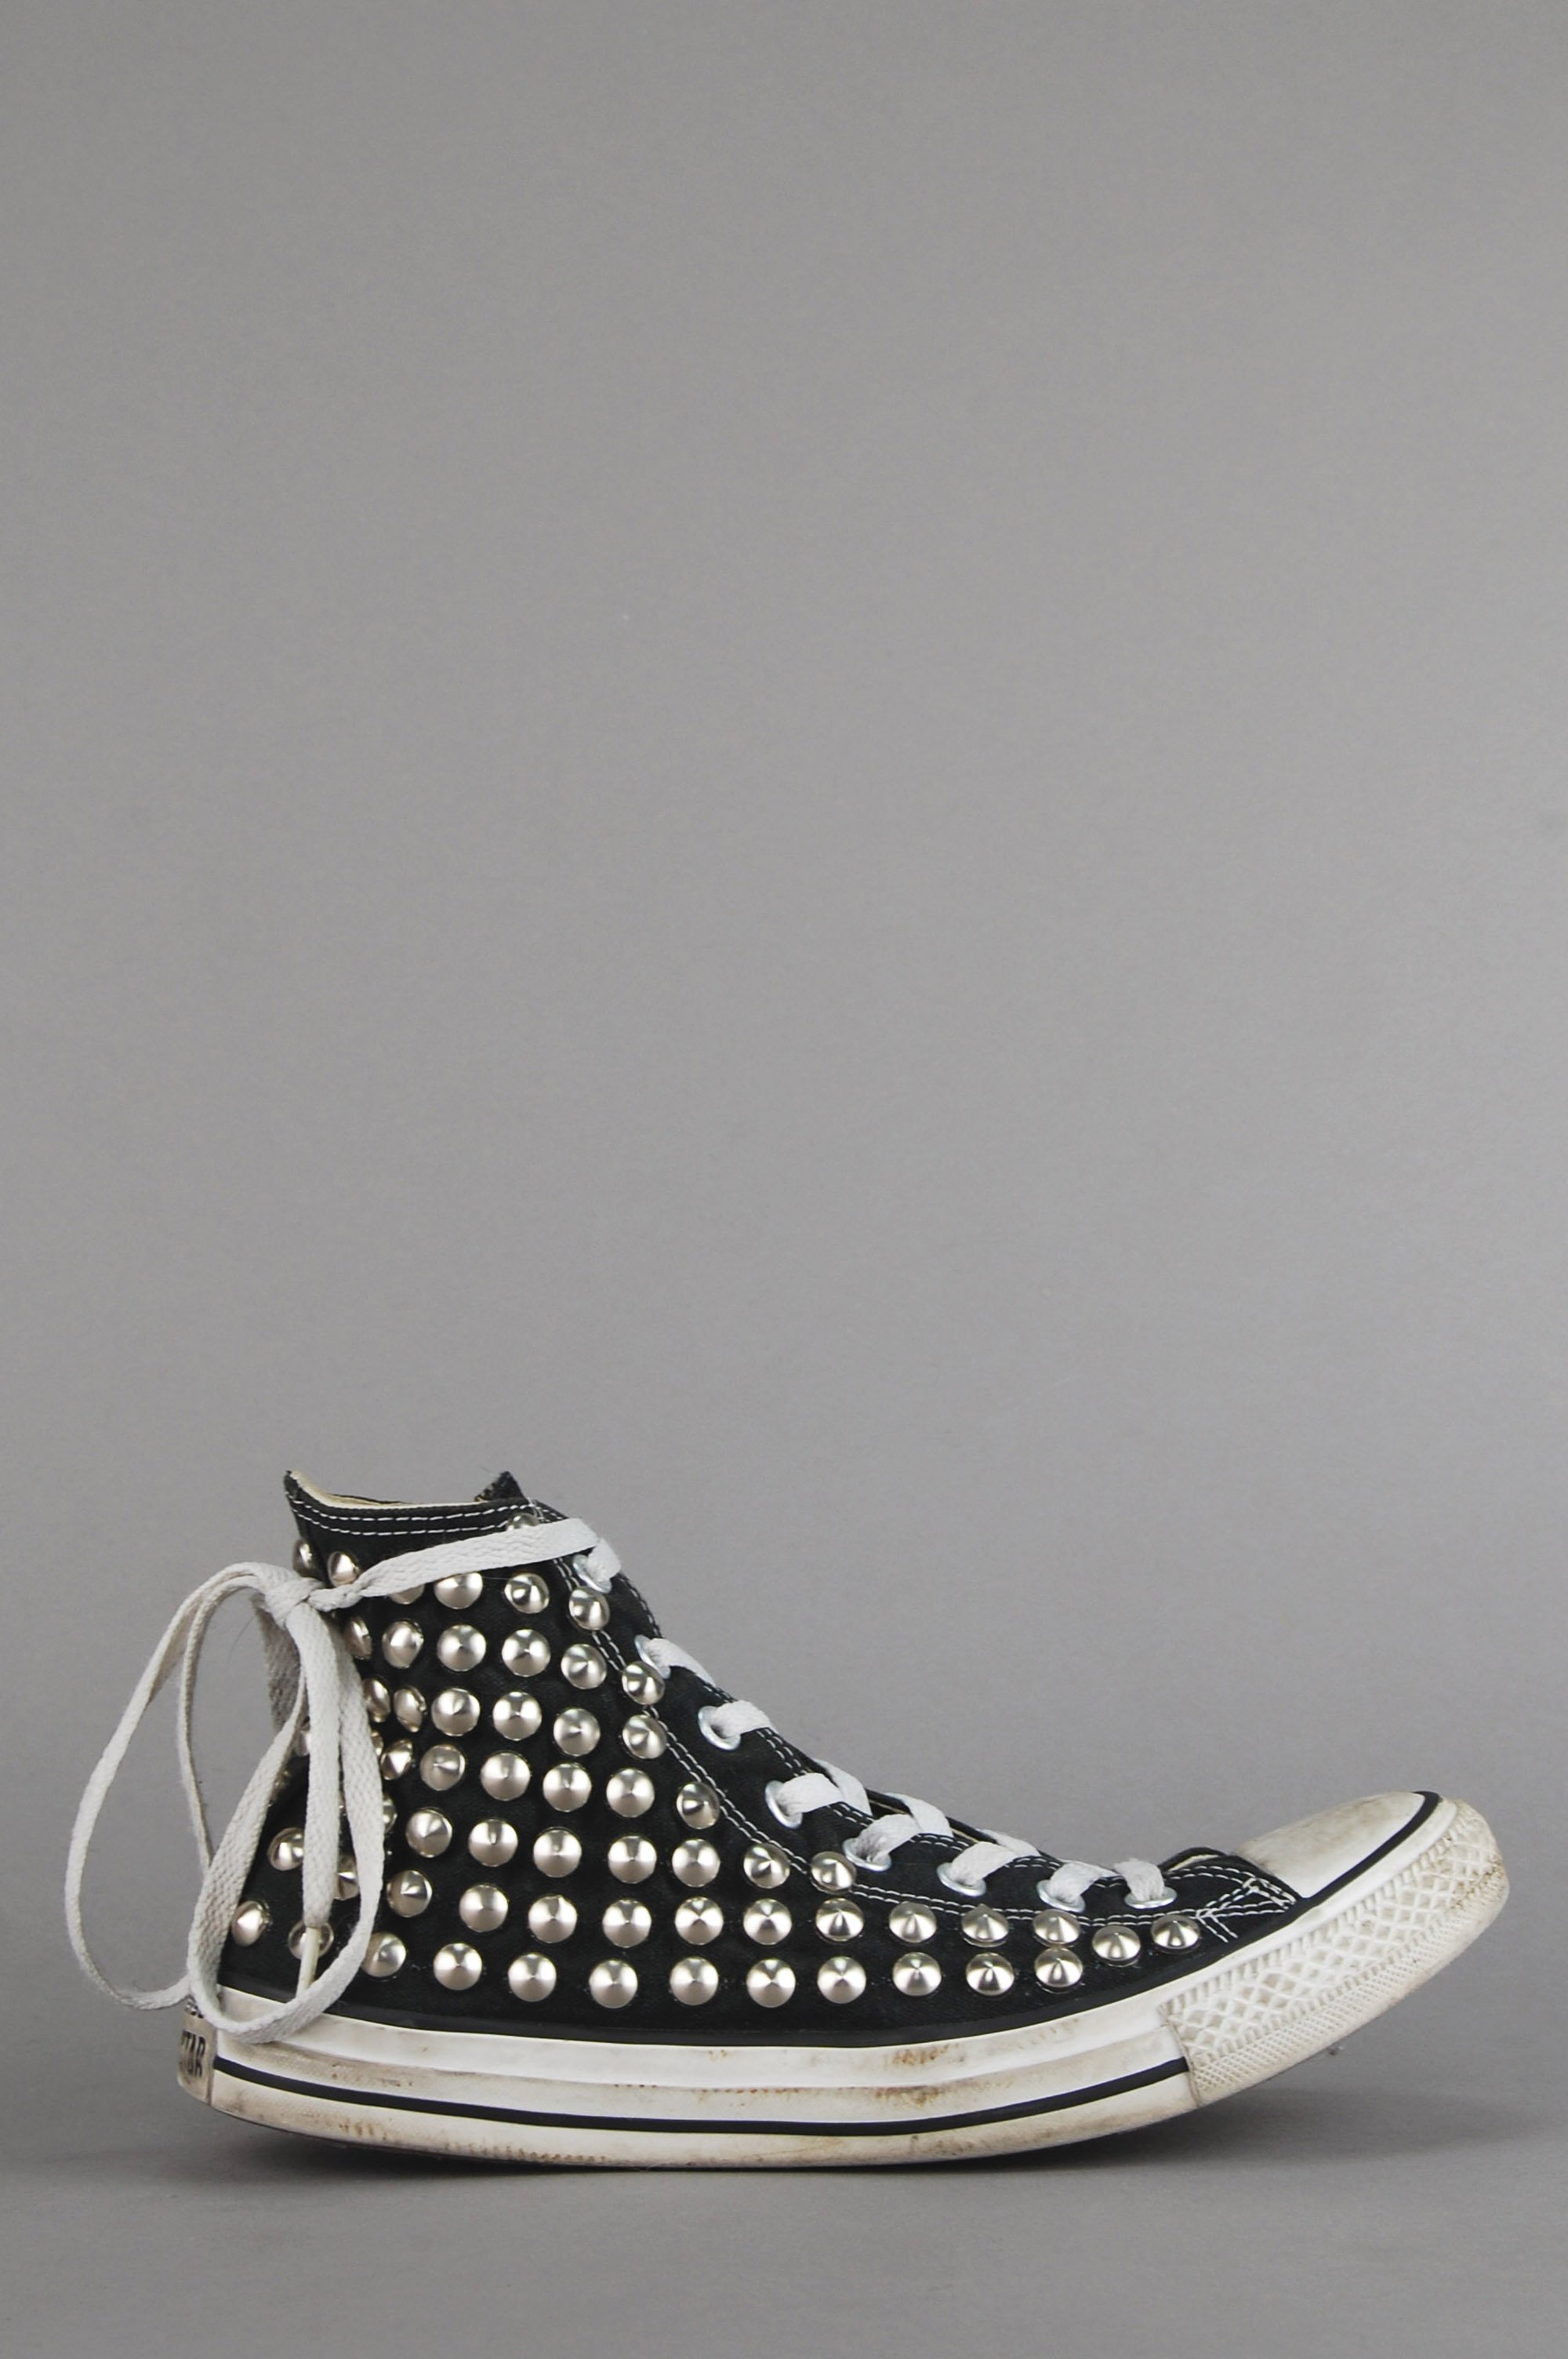 Distressed Studded Converse High Top Sneakers   Studded